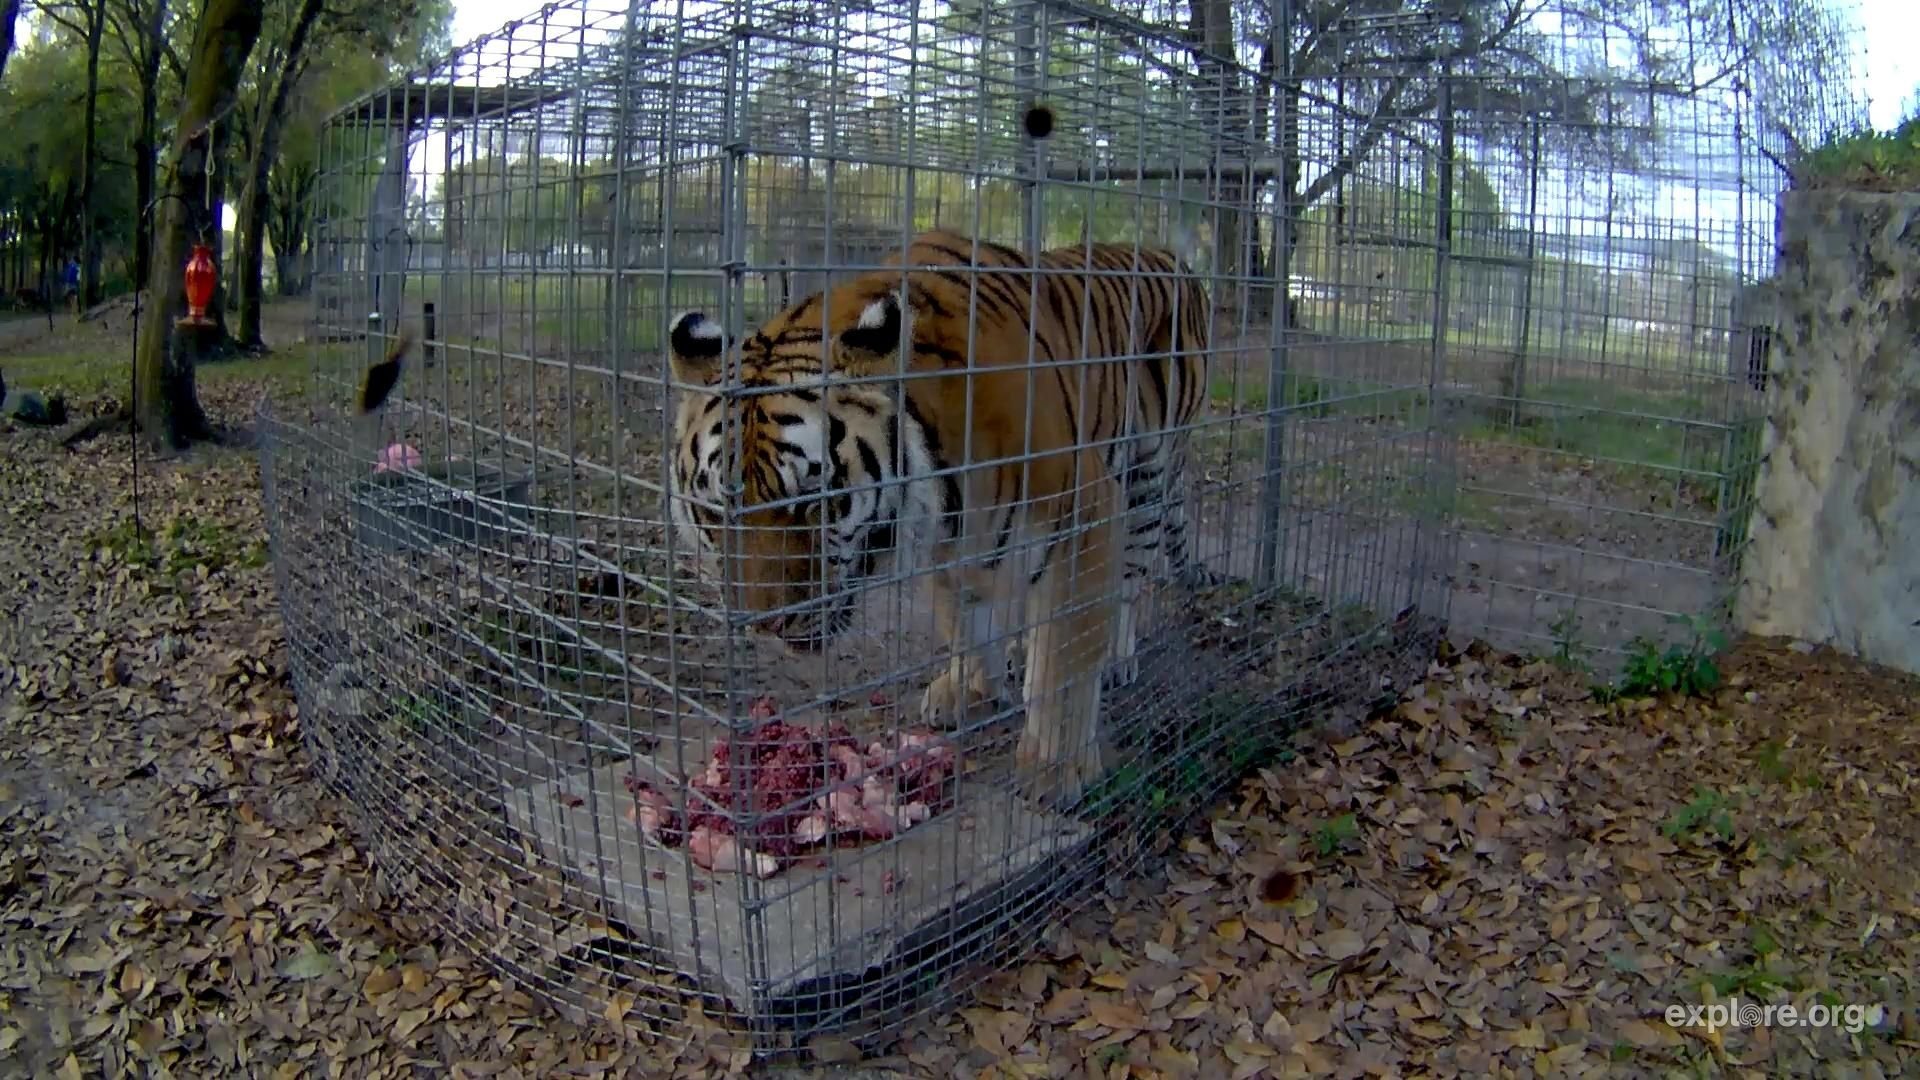 Lion vs Tiger? Watch live video of lions and tigers